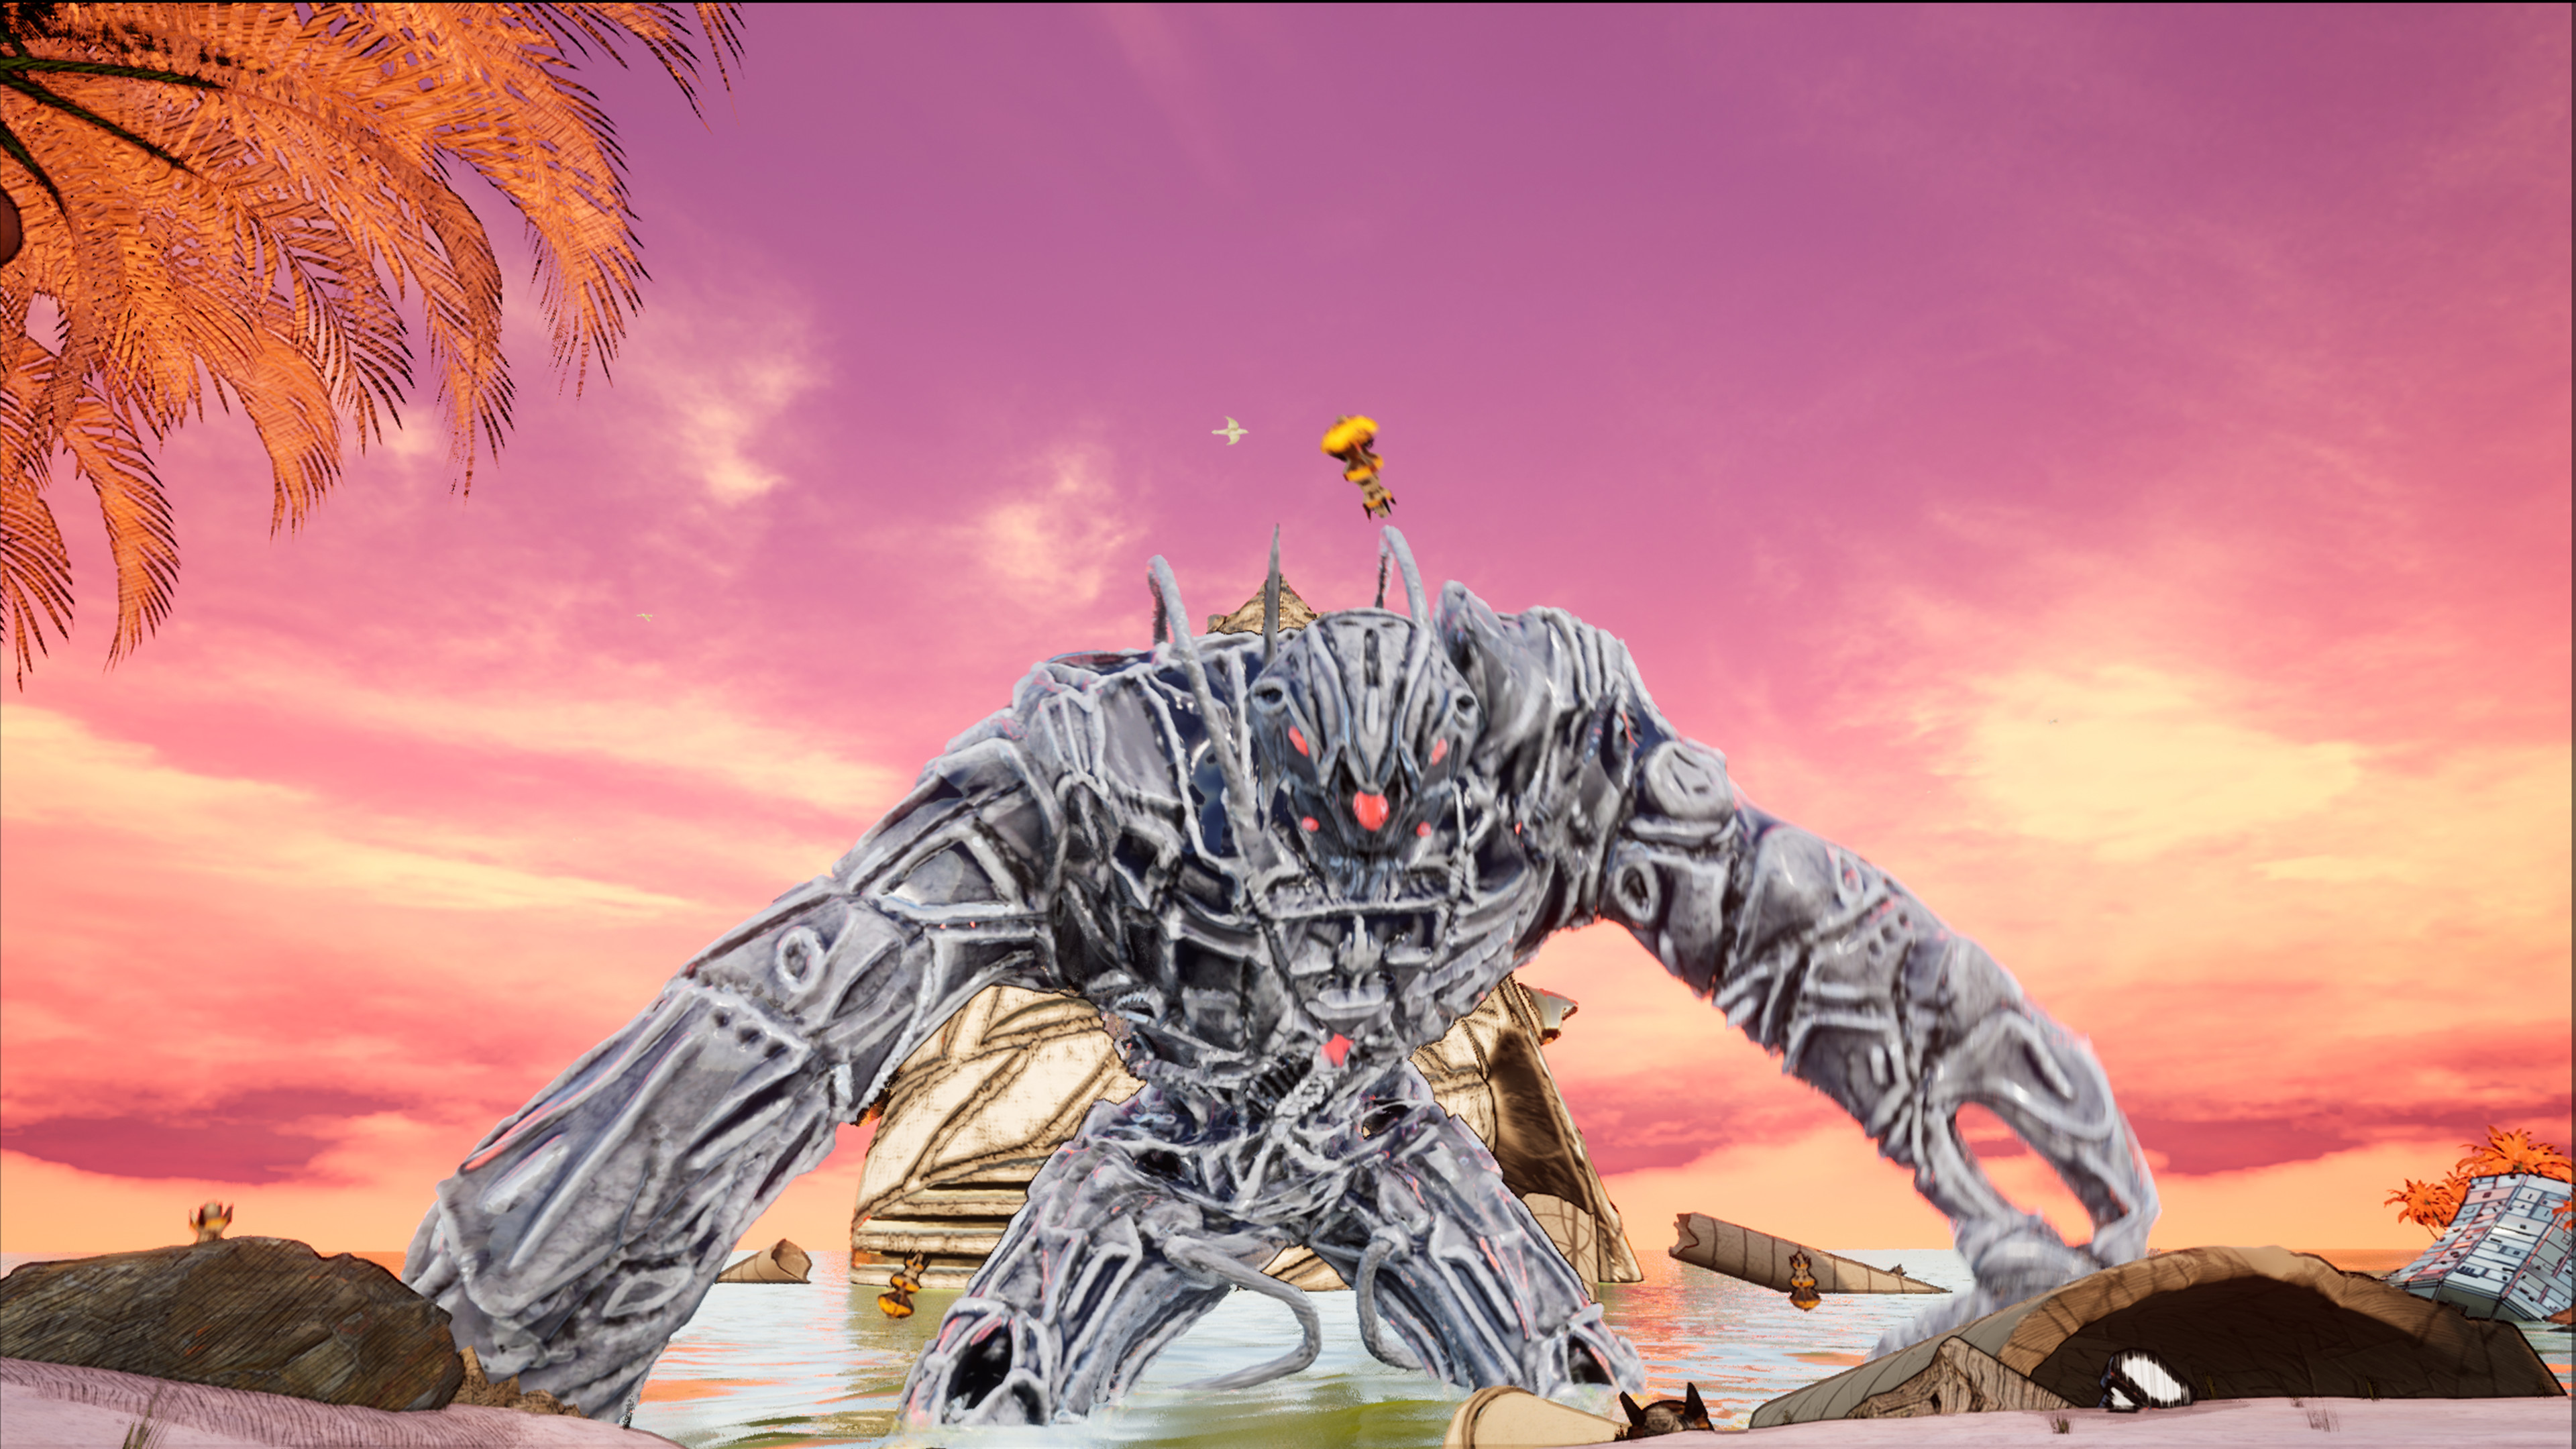 The defence robot rising out of the sea as the player reaches the beach.